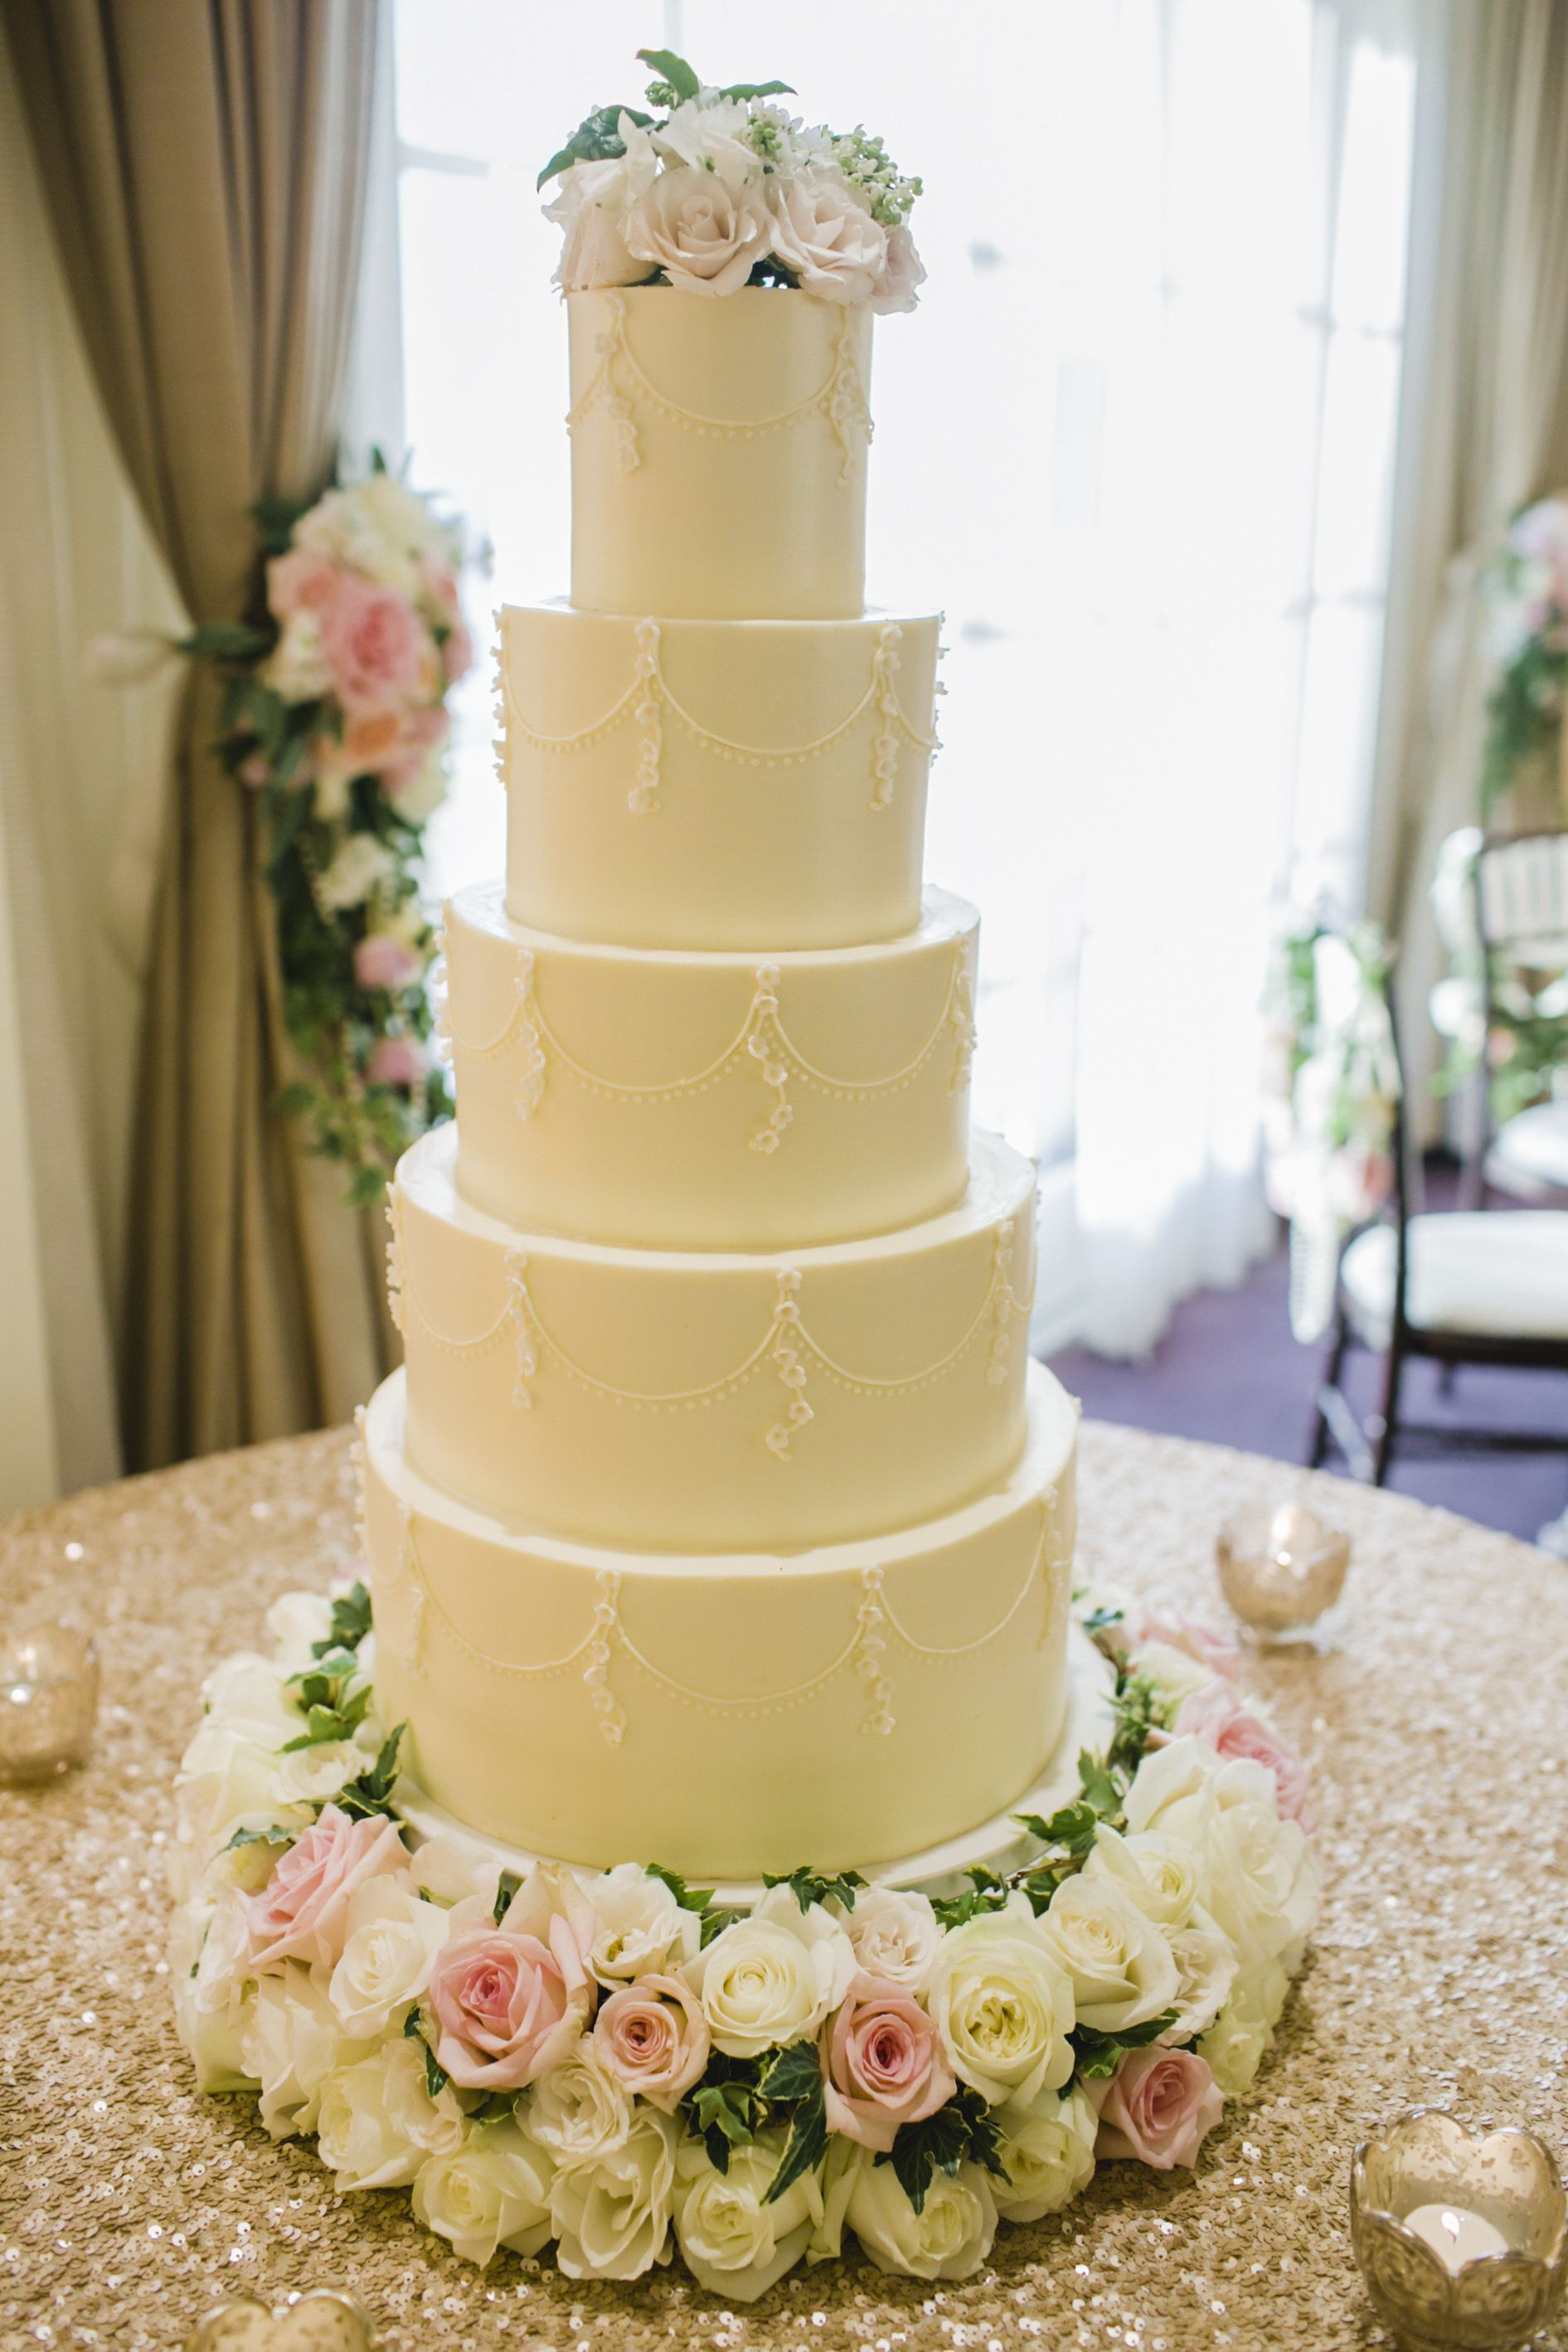 Large Wedding Cake 5 Tier Flower Stand Roses Light Pink And Ivory Florist Fls By Jenny Photograoher Focus Photo Inc